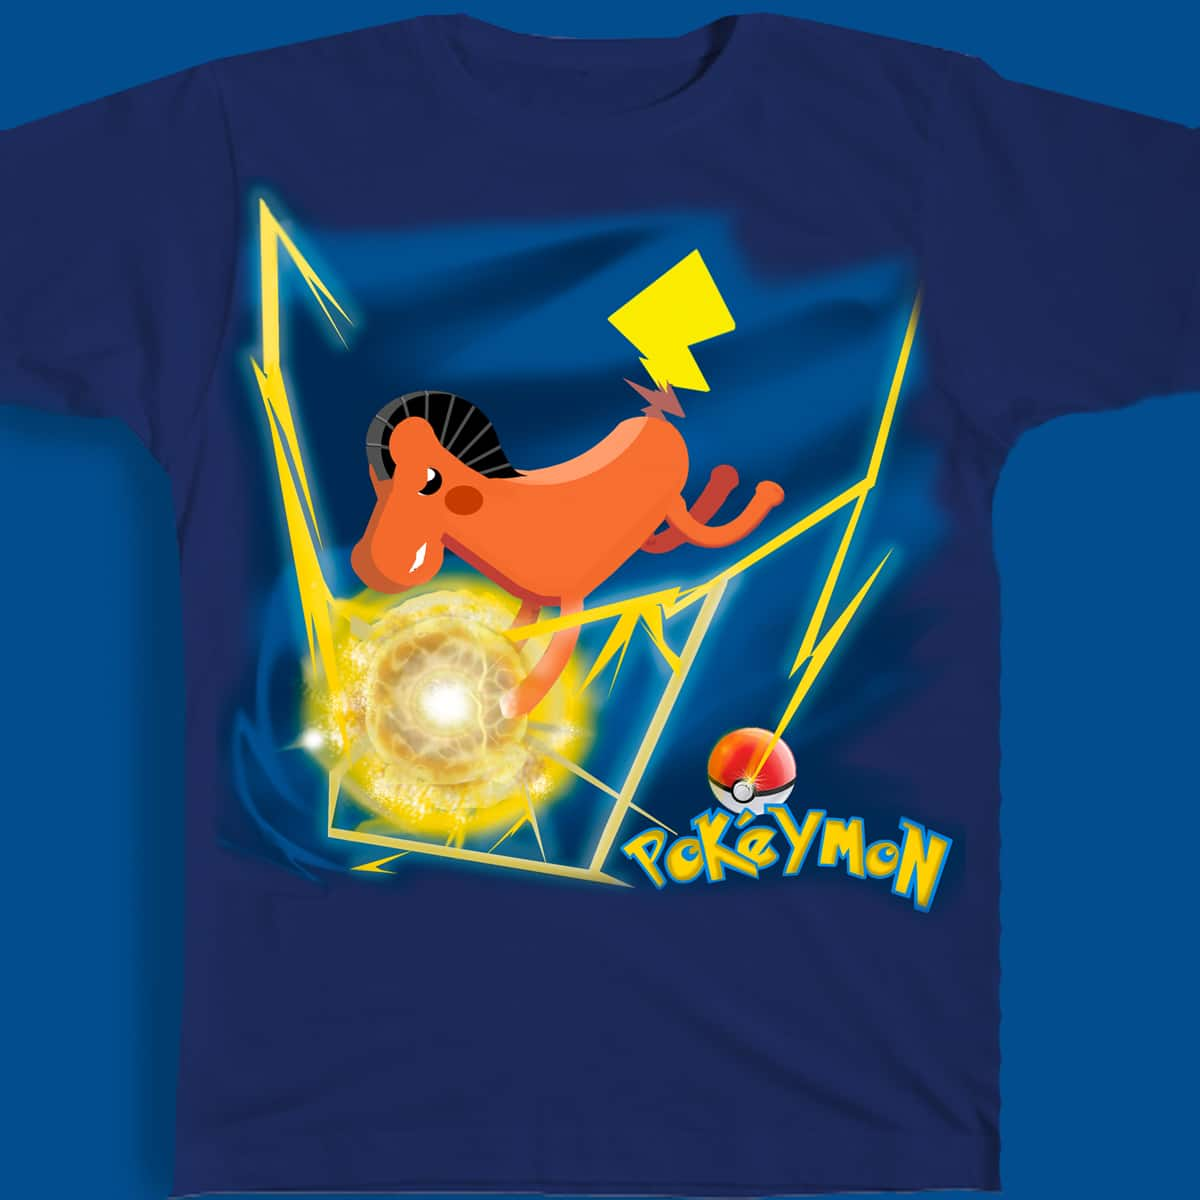 Pokeymon by scottsherwood on Threadless